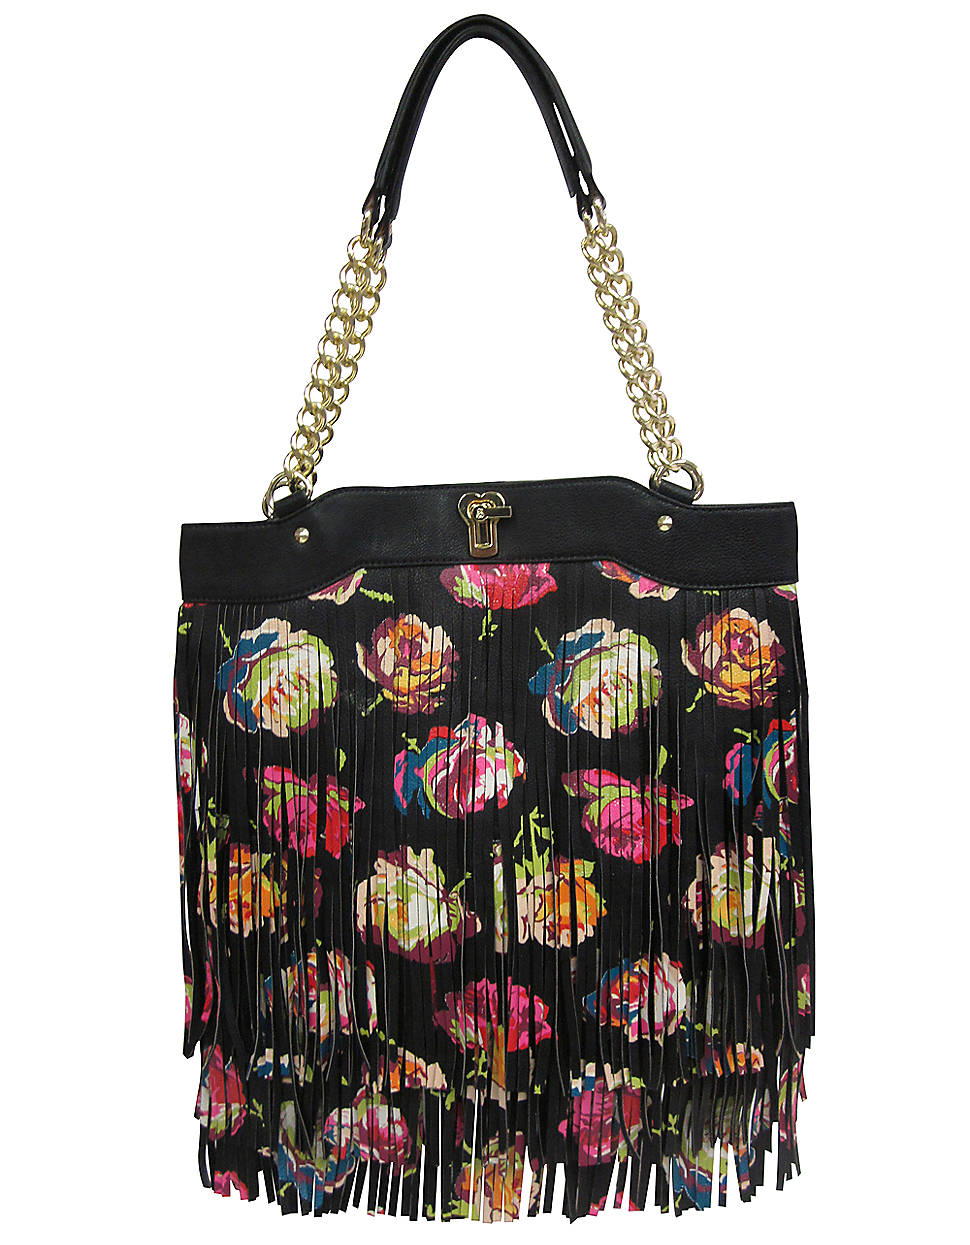 Betsey Johnson Fringy Floral Tote Bag In Black | Lyst